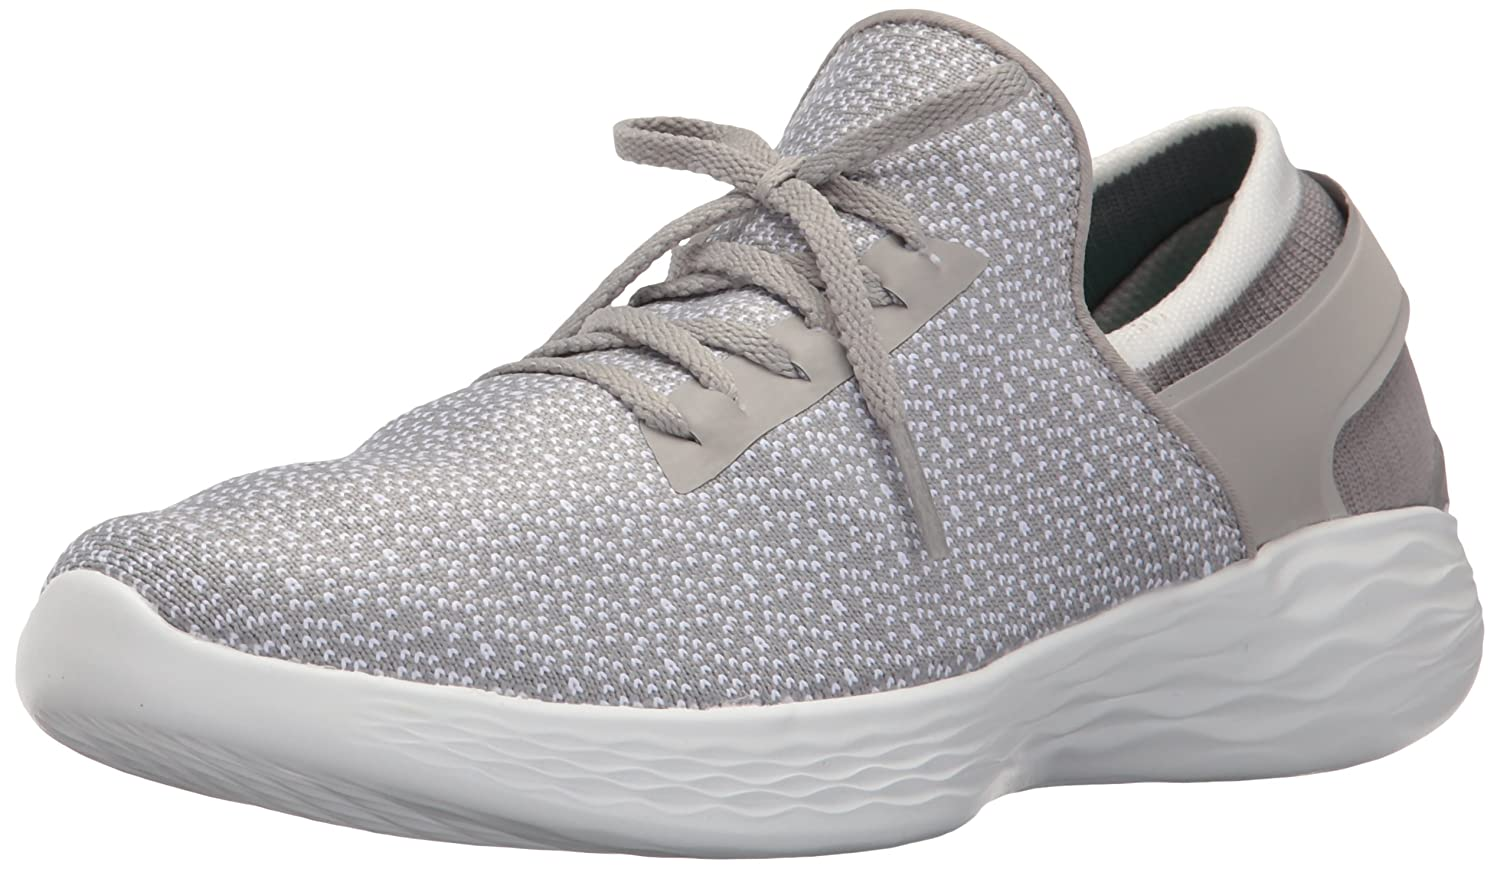 Skechers Women's You Inspire Slip-on Shoe B01N5PE8XC 5 B(M) US|Gray